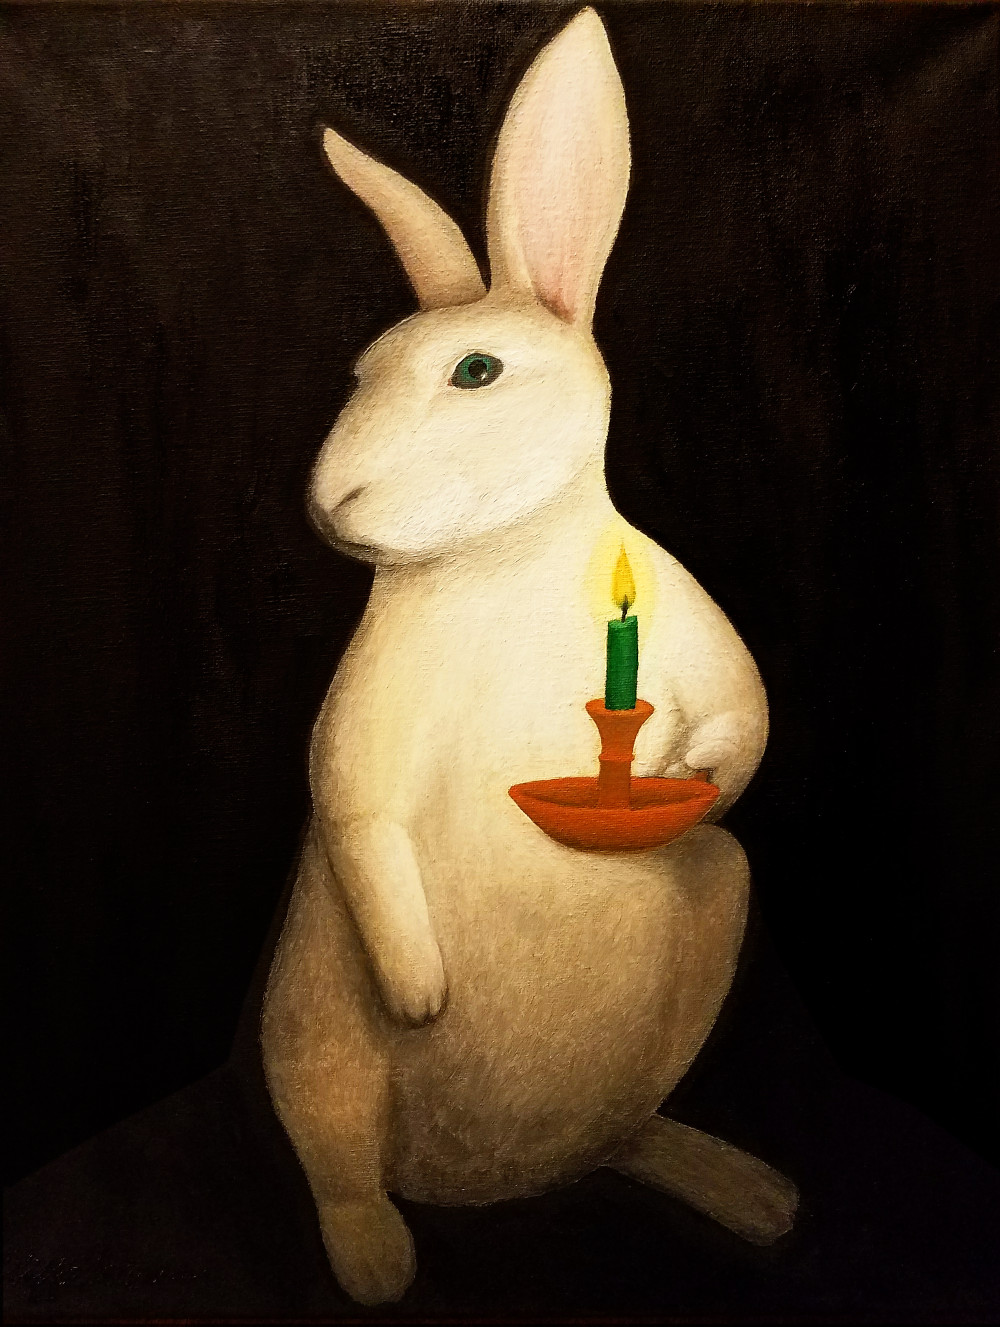 white rabbit holding a candle